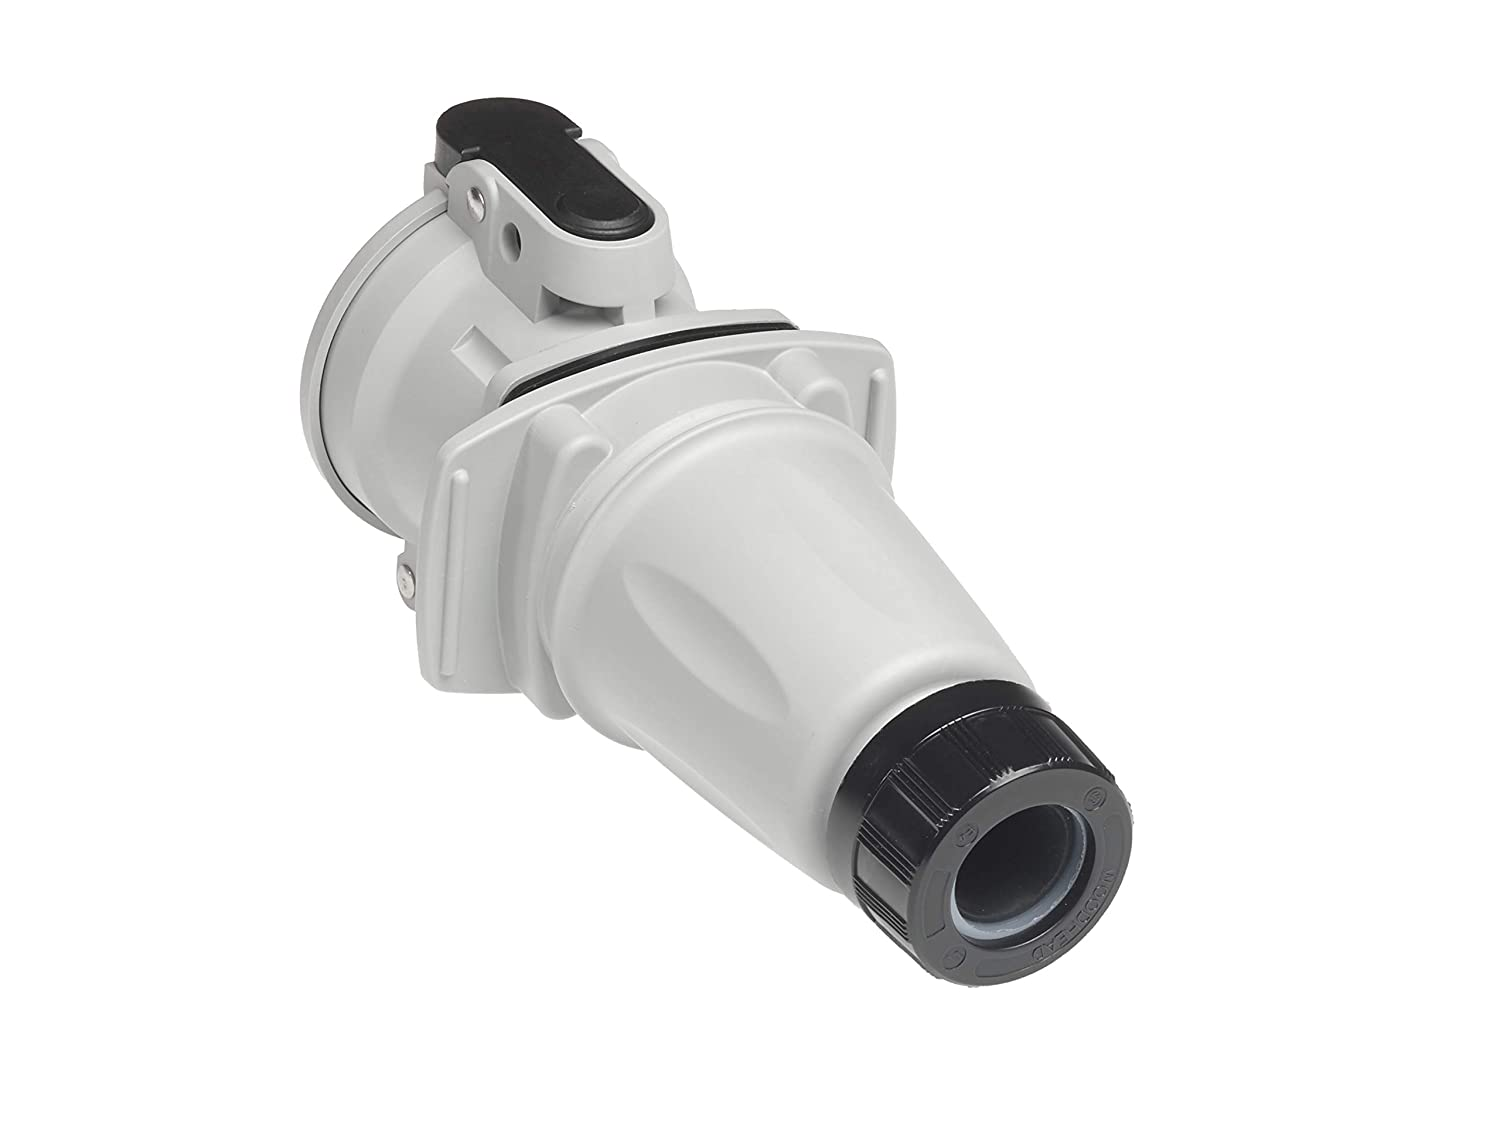 Switch Rated Connector Receptacle Woodhead 1122191041 ArcArrest 70 deg 600 V AC 3 Pole Ground Angle Plug Position 14 30A